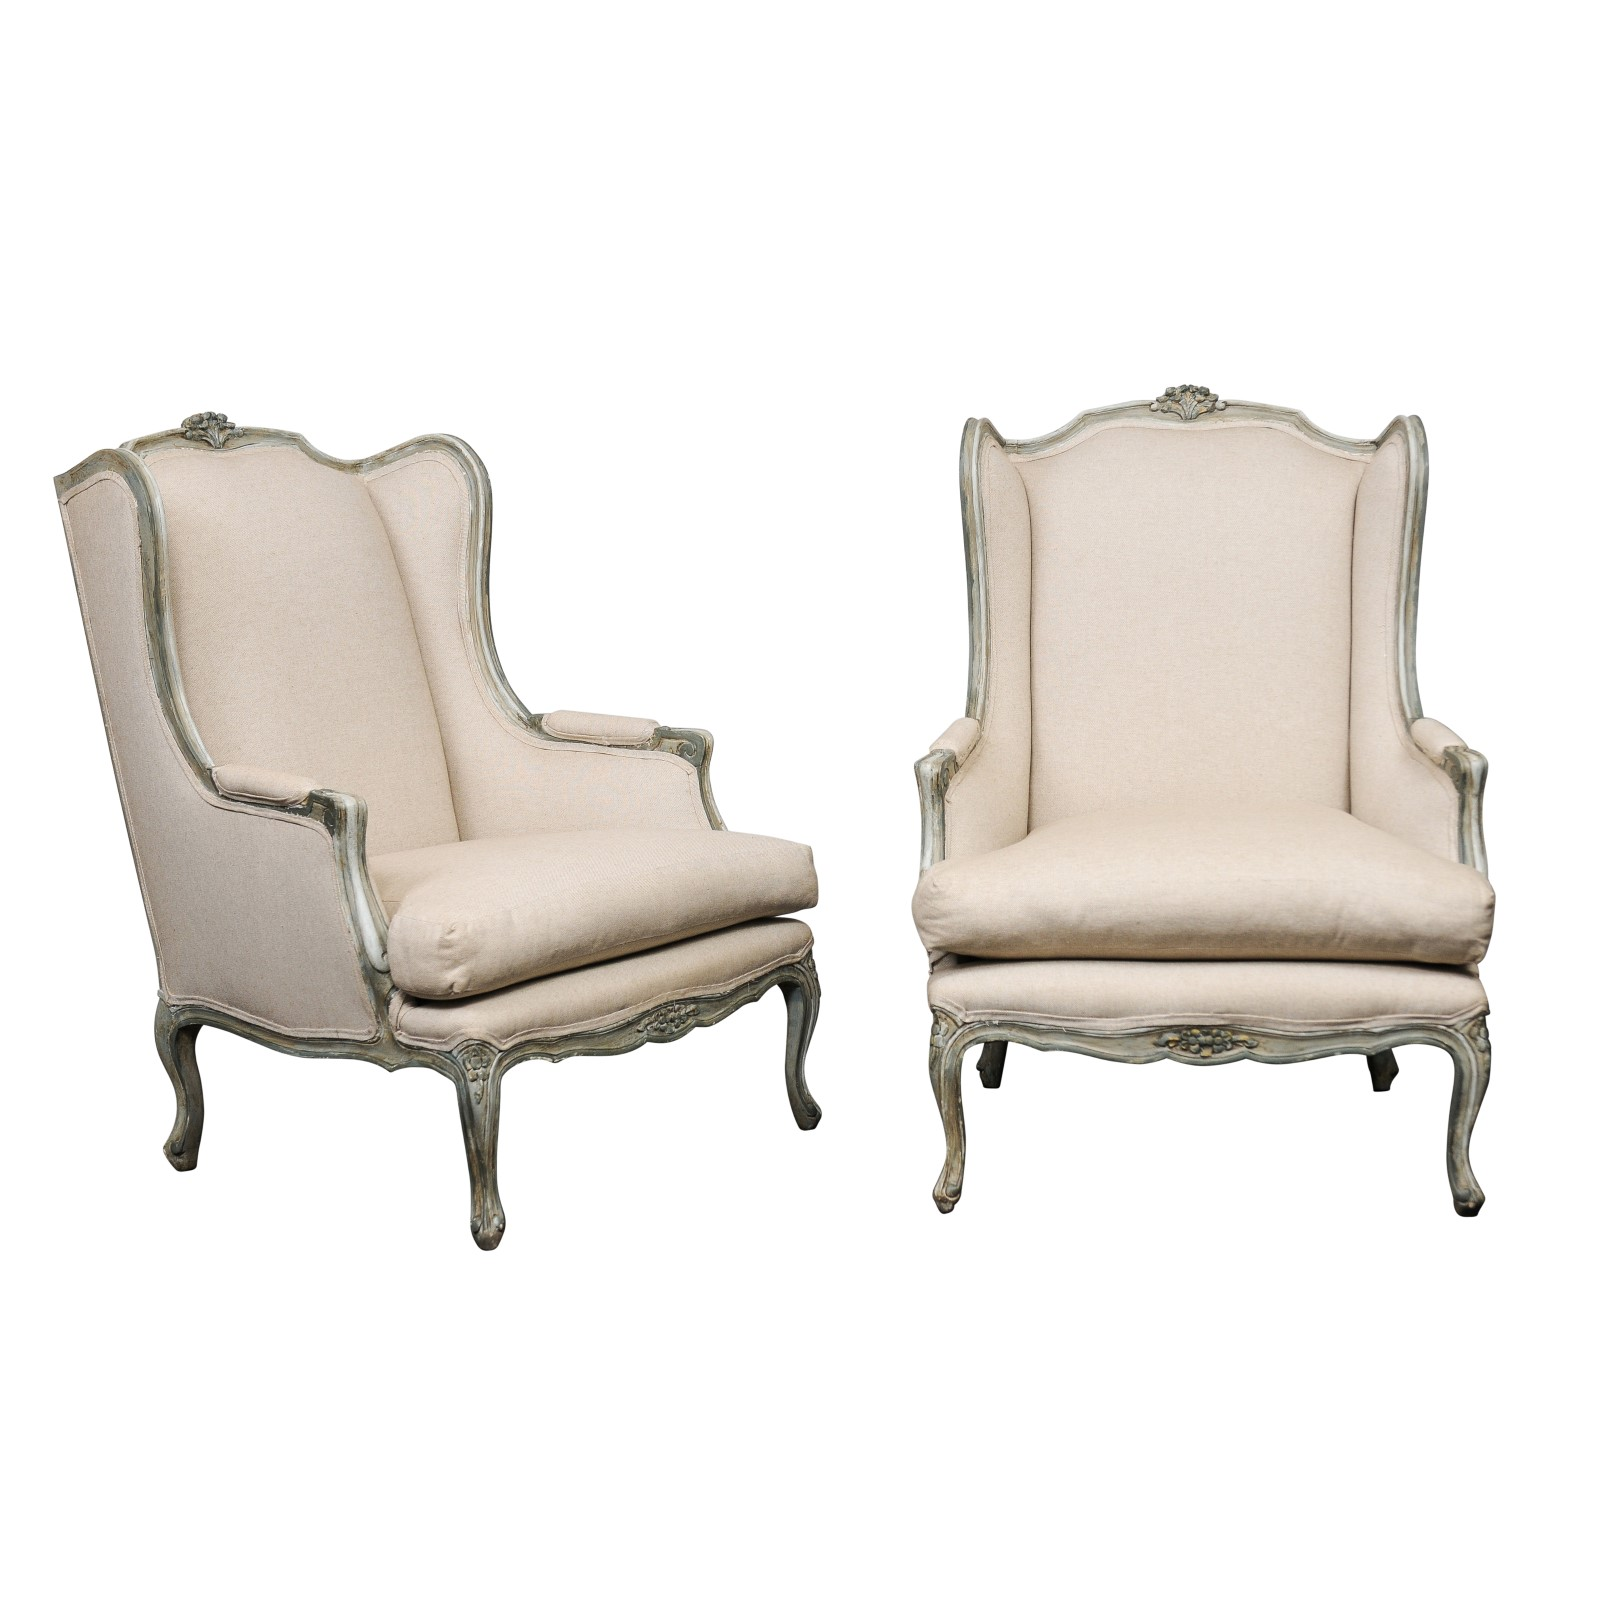 A Pair Of French Wingback Chairs